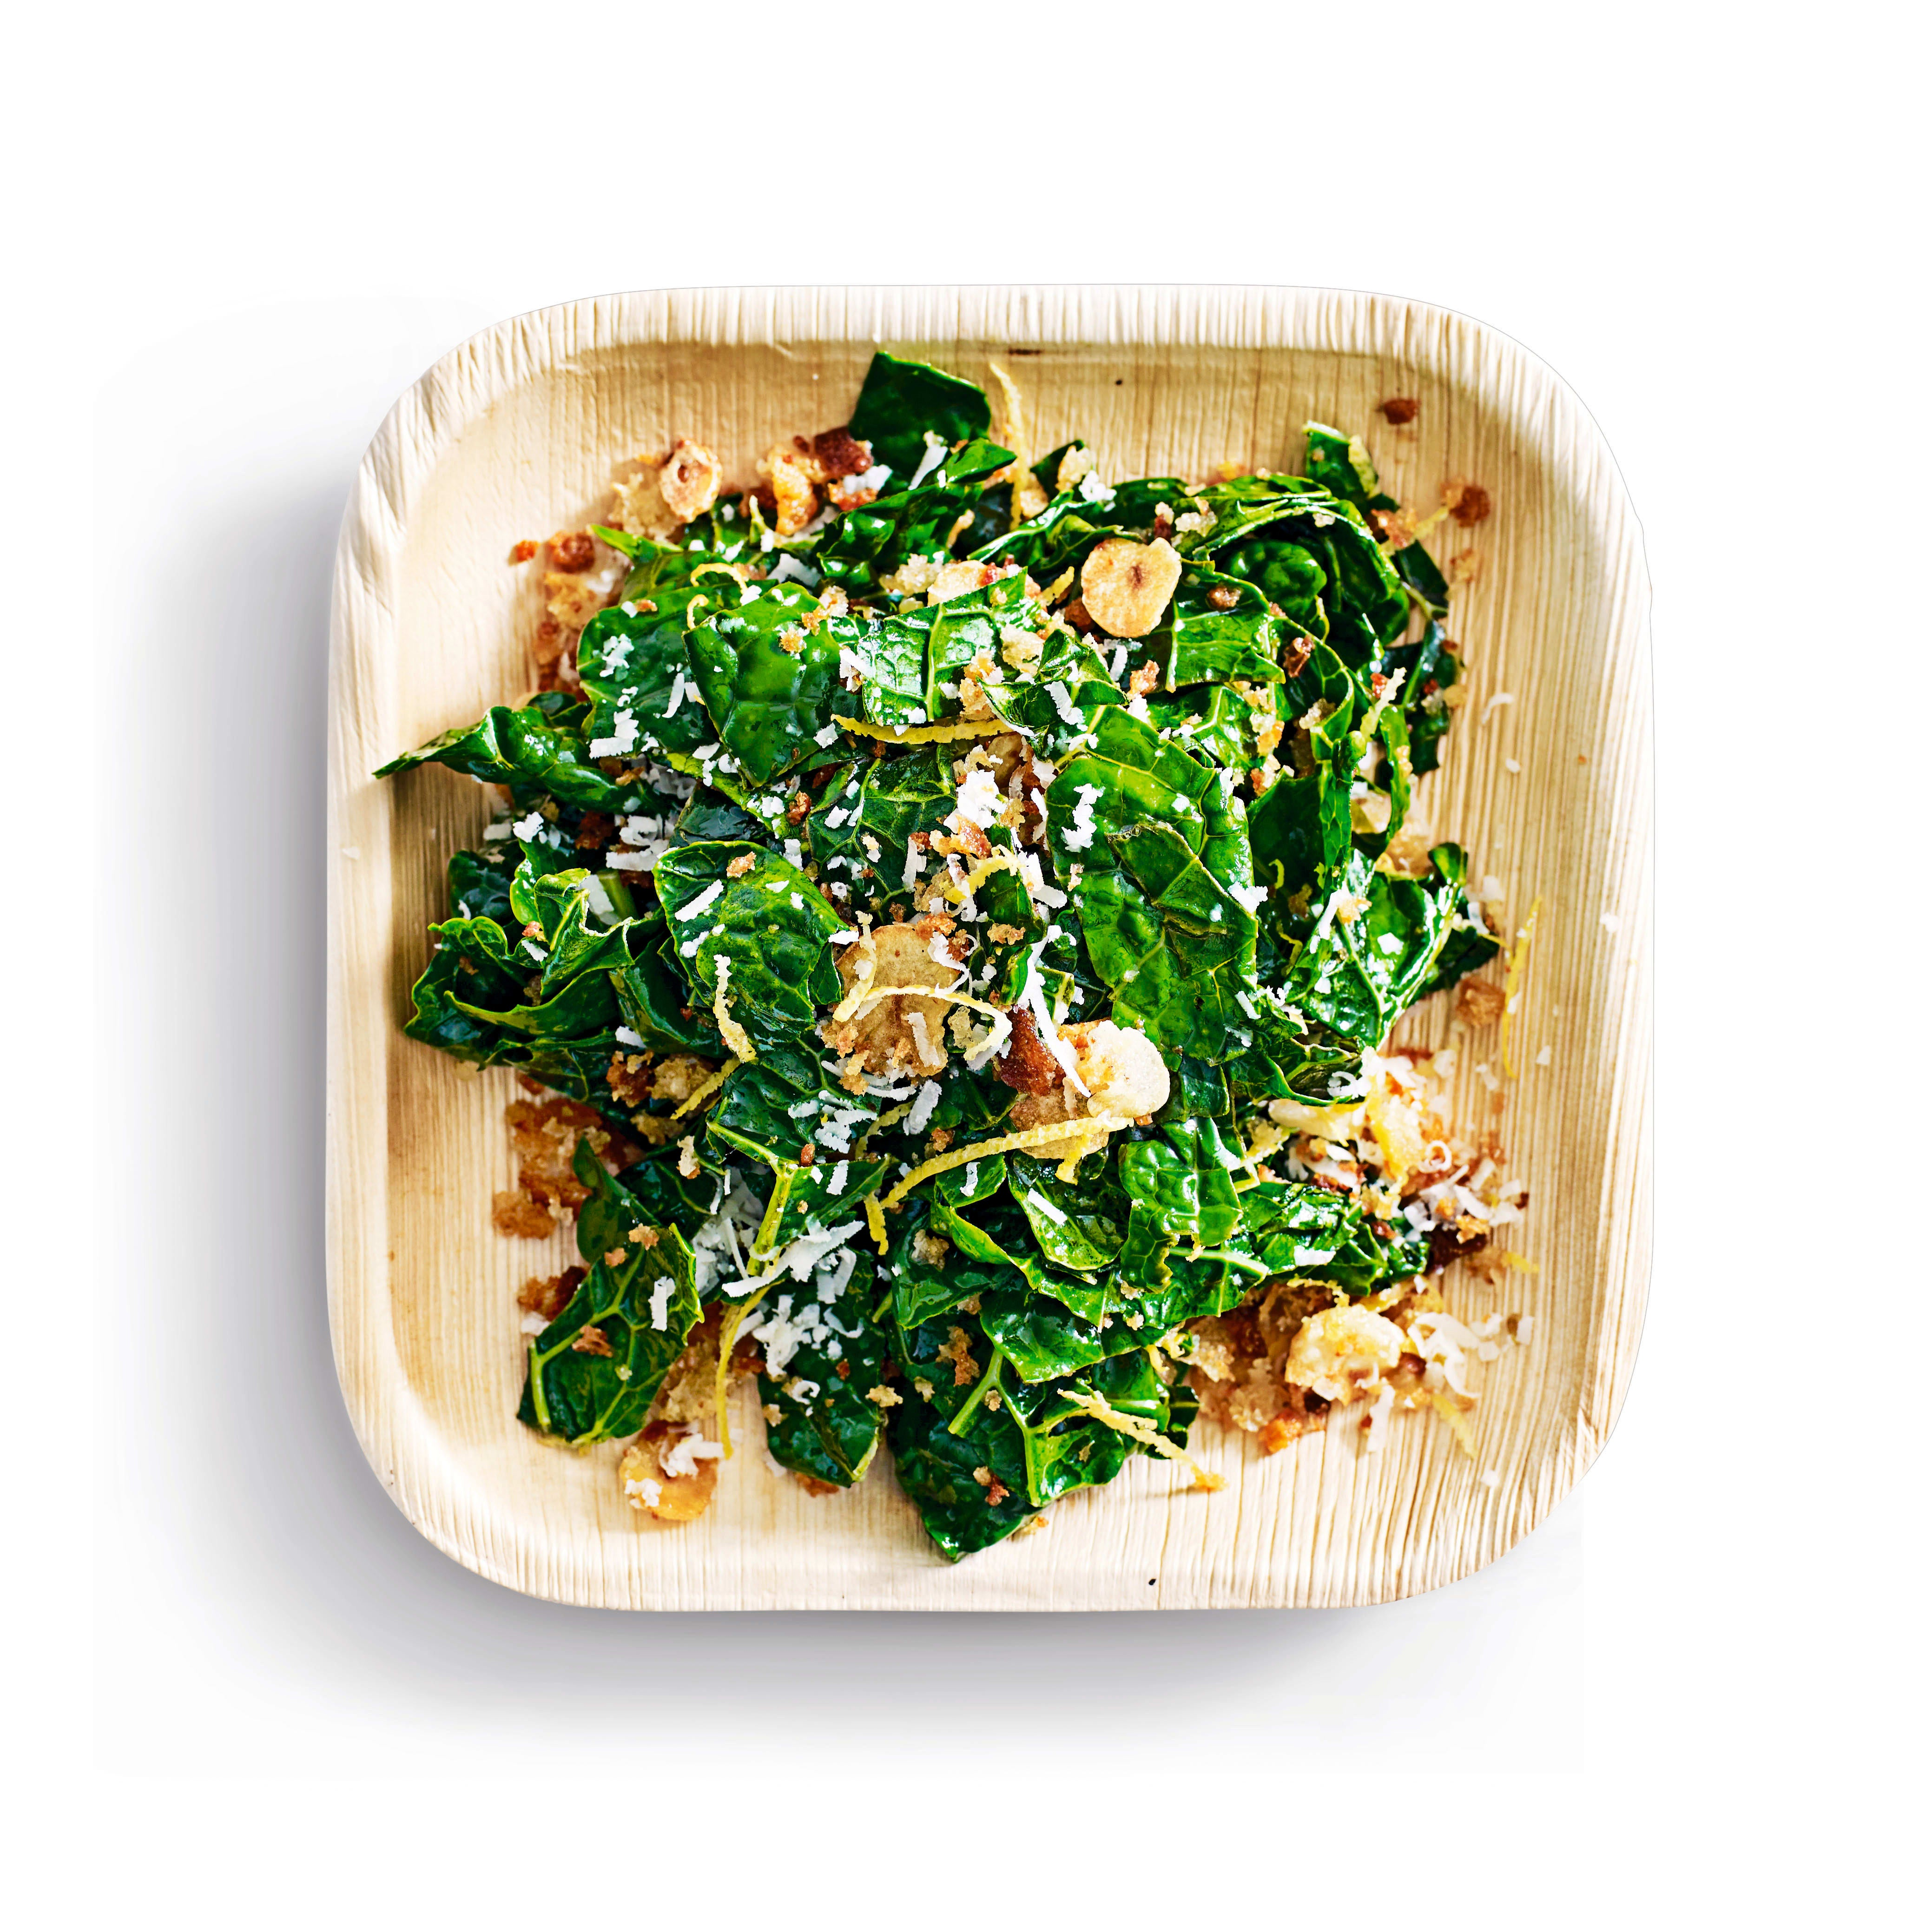 Photo of Wilted kale with garlic crumbs by WW